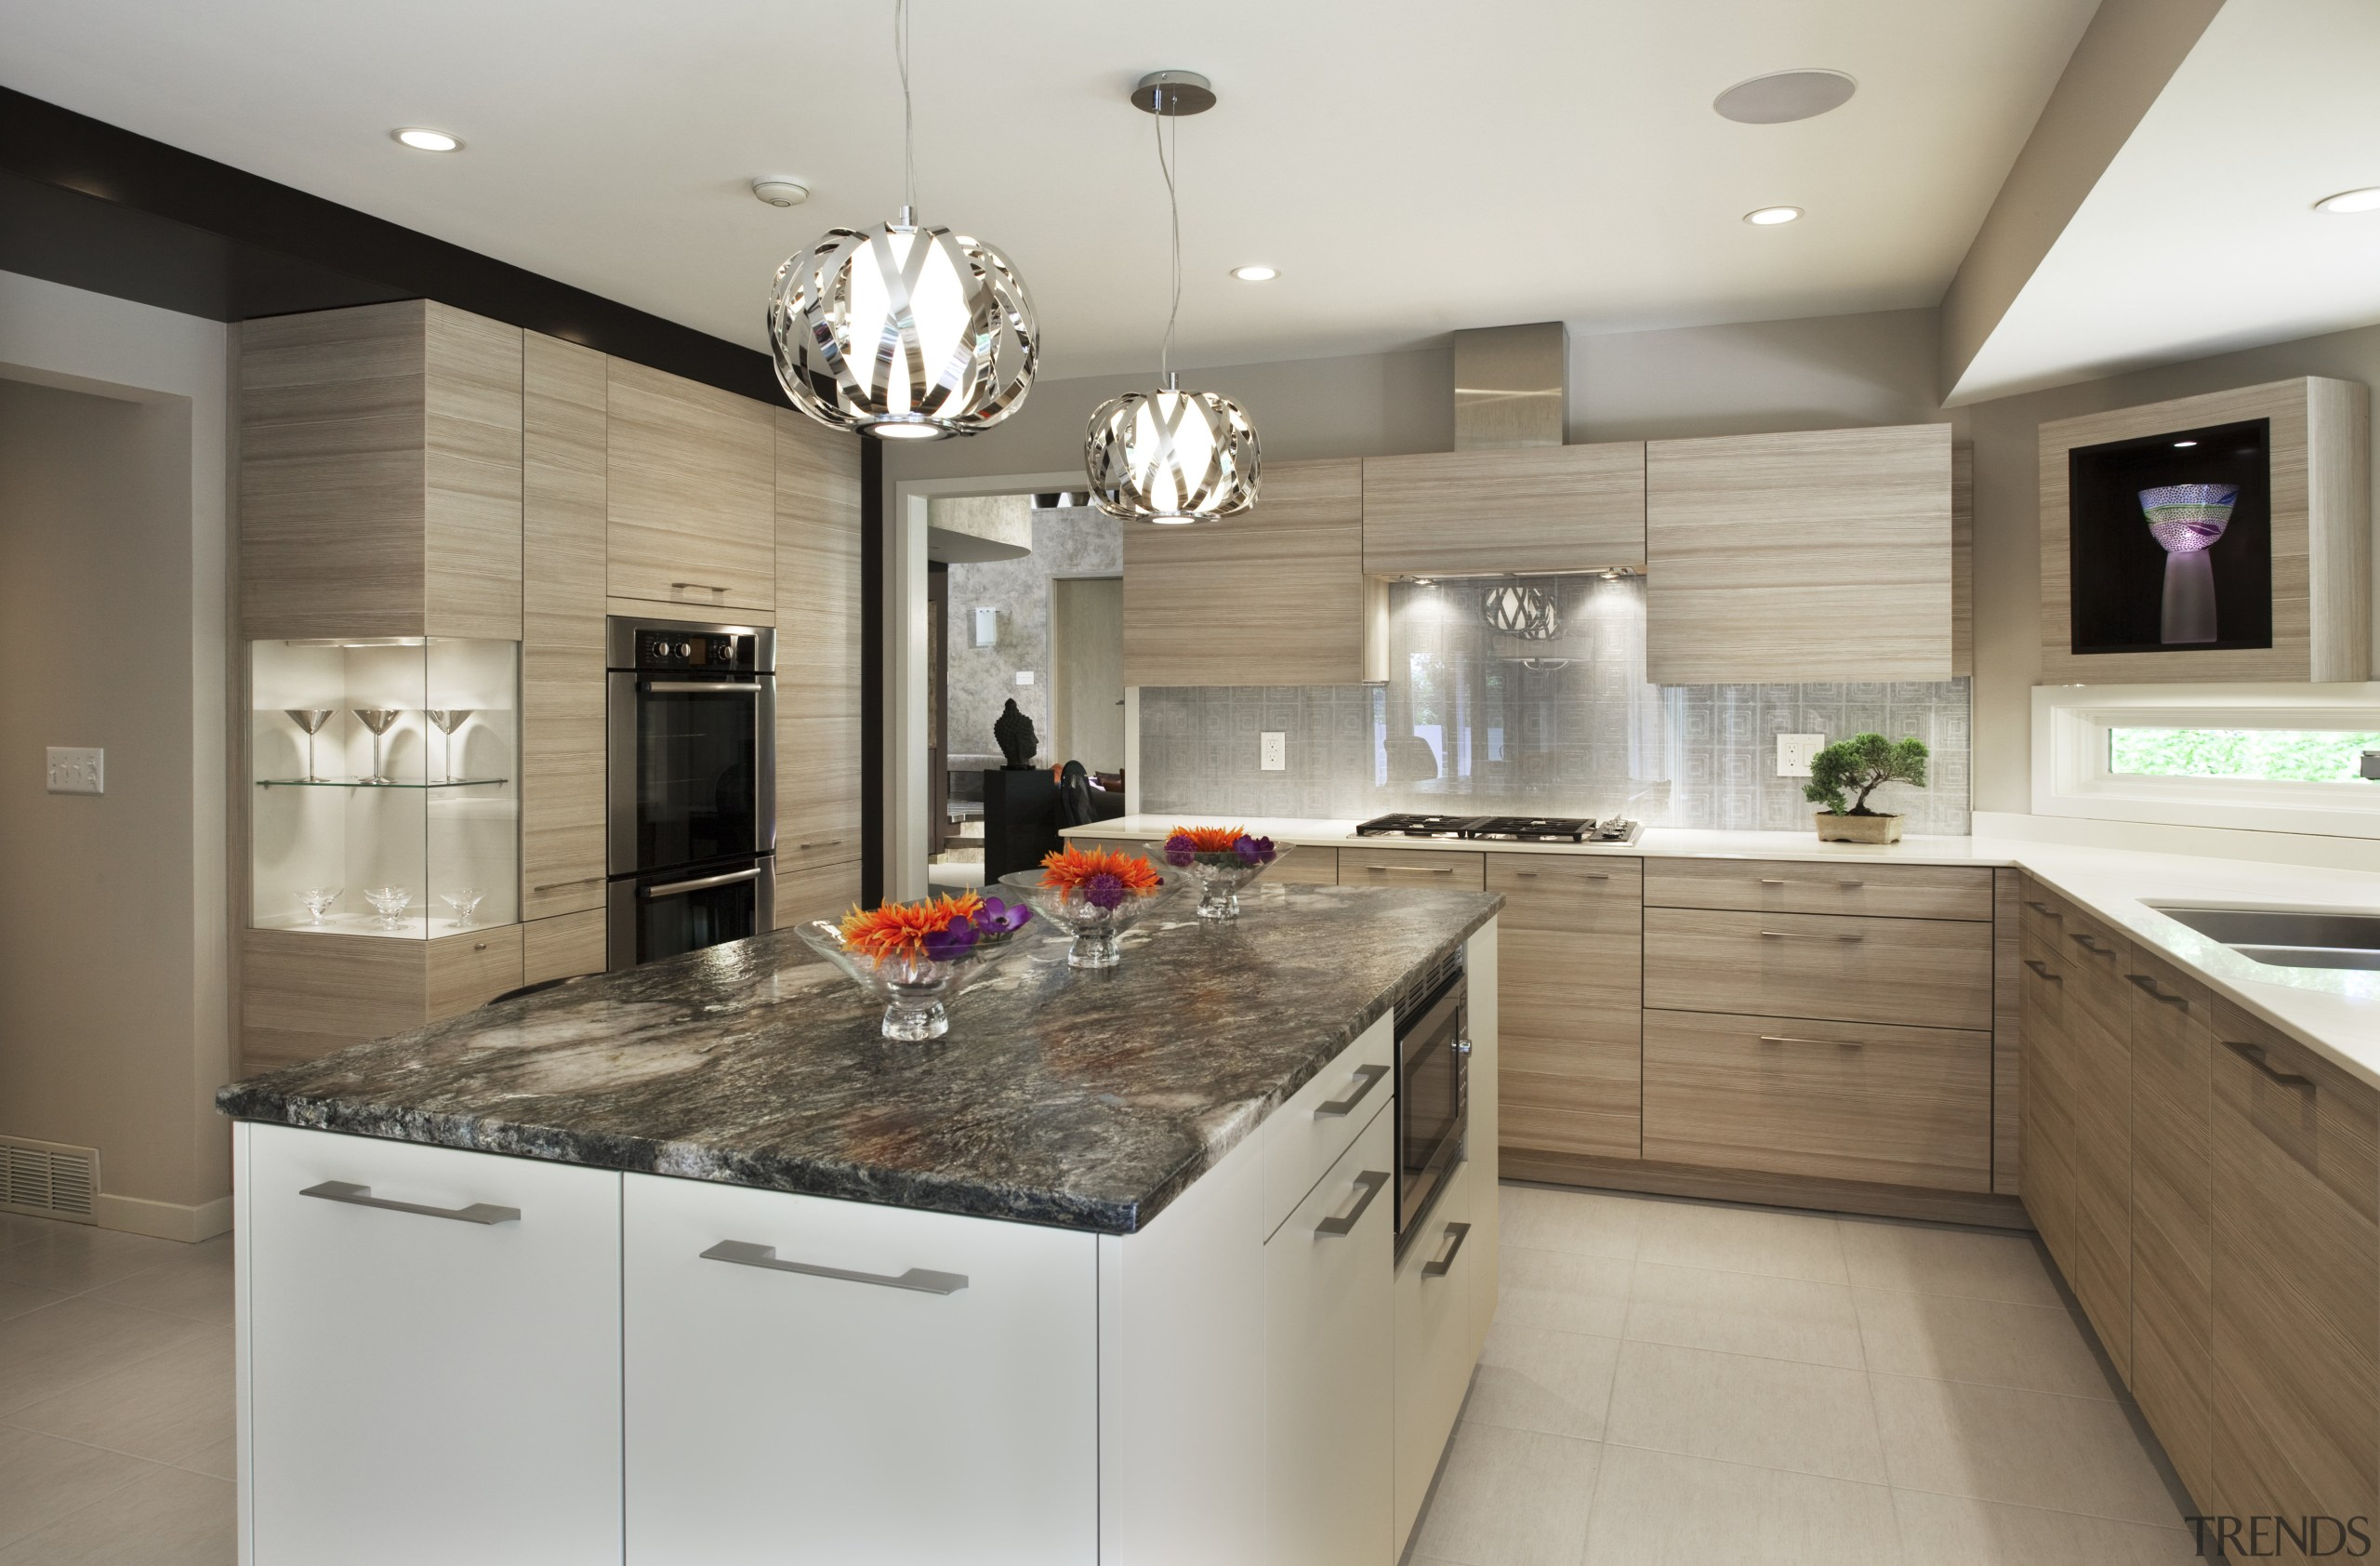 This New Kitchen Designed By Jean Gallery 2 Trends